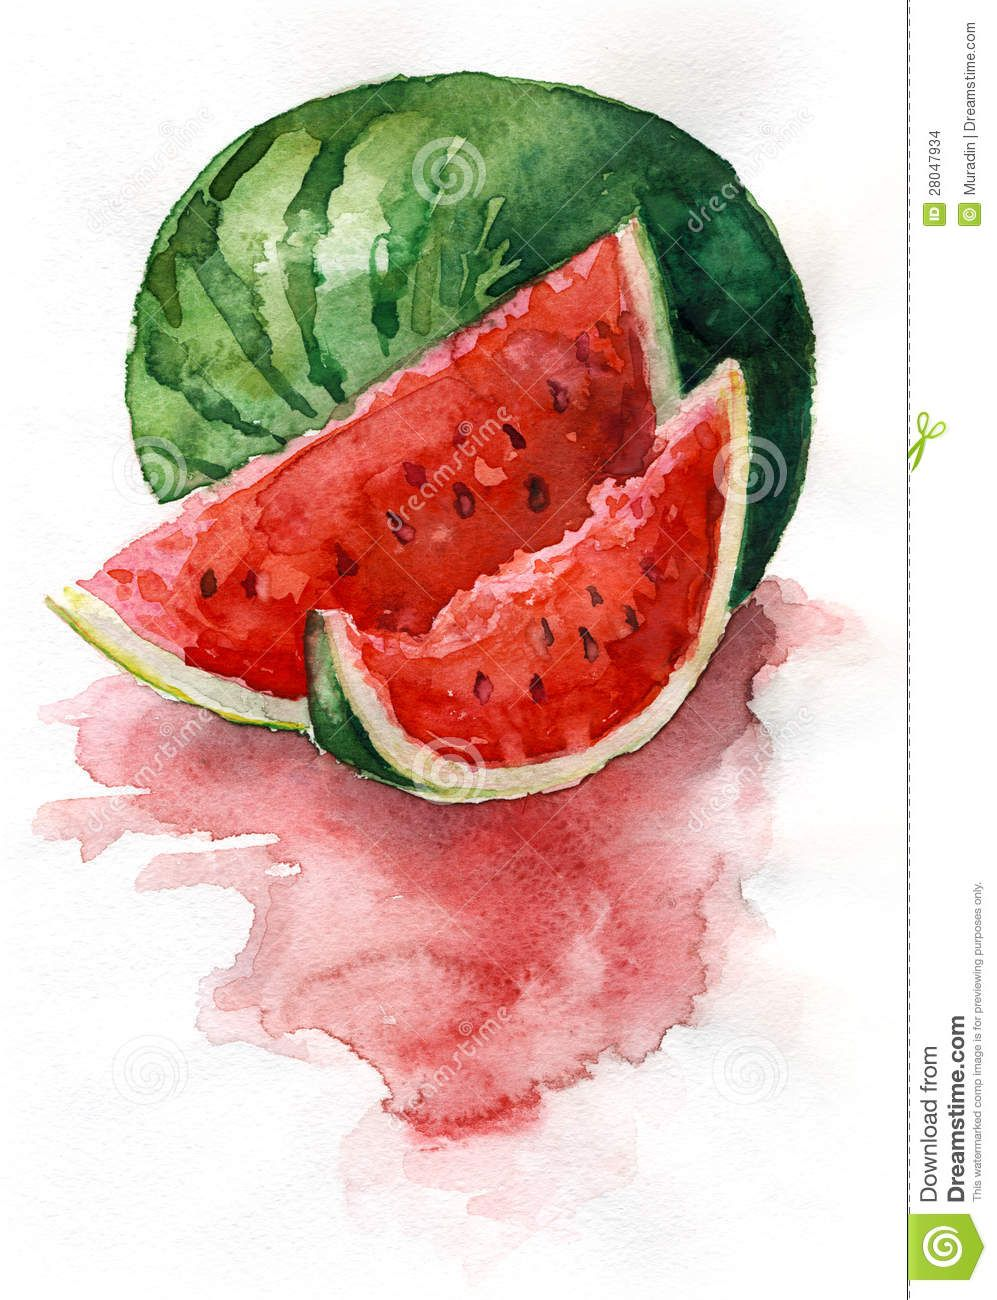 Watercolor Watermelon Download From Over 63 Million High Quality